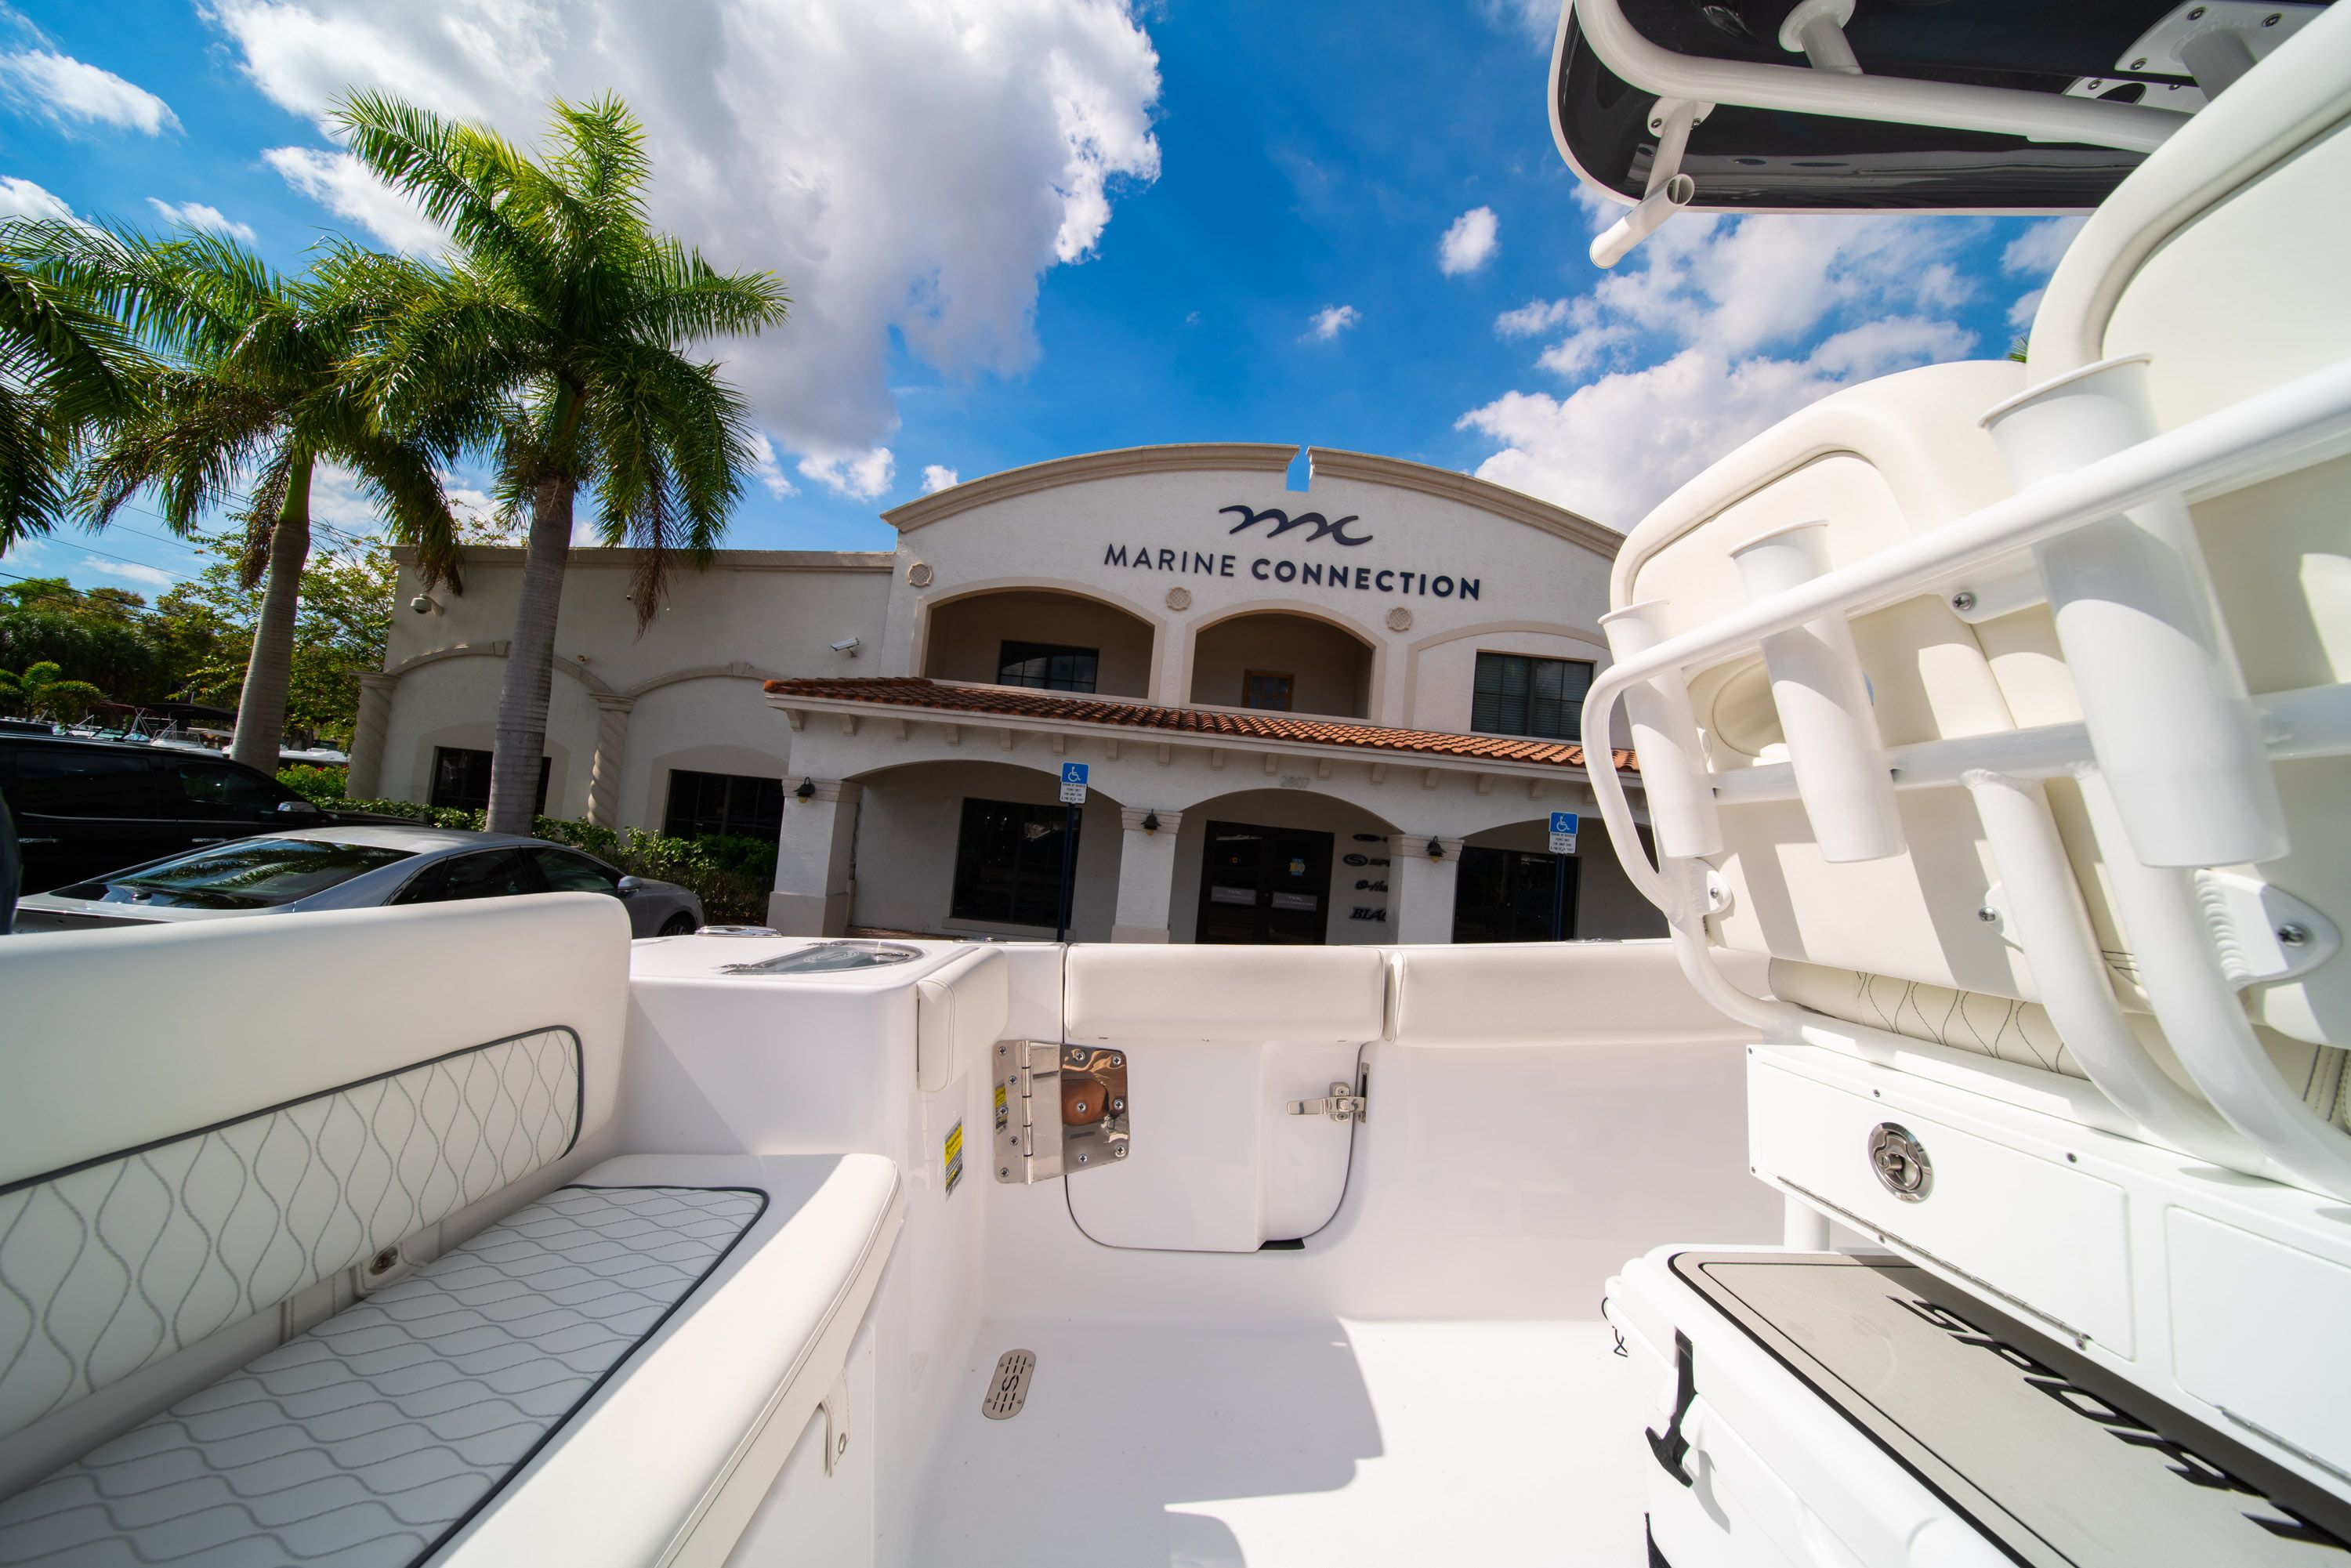 Thumbnail 22 for New 2020 Sportsman Heritage 251 Center Console boat for sale in West Palm Beach, FL